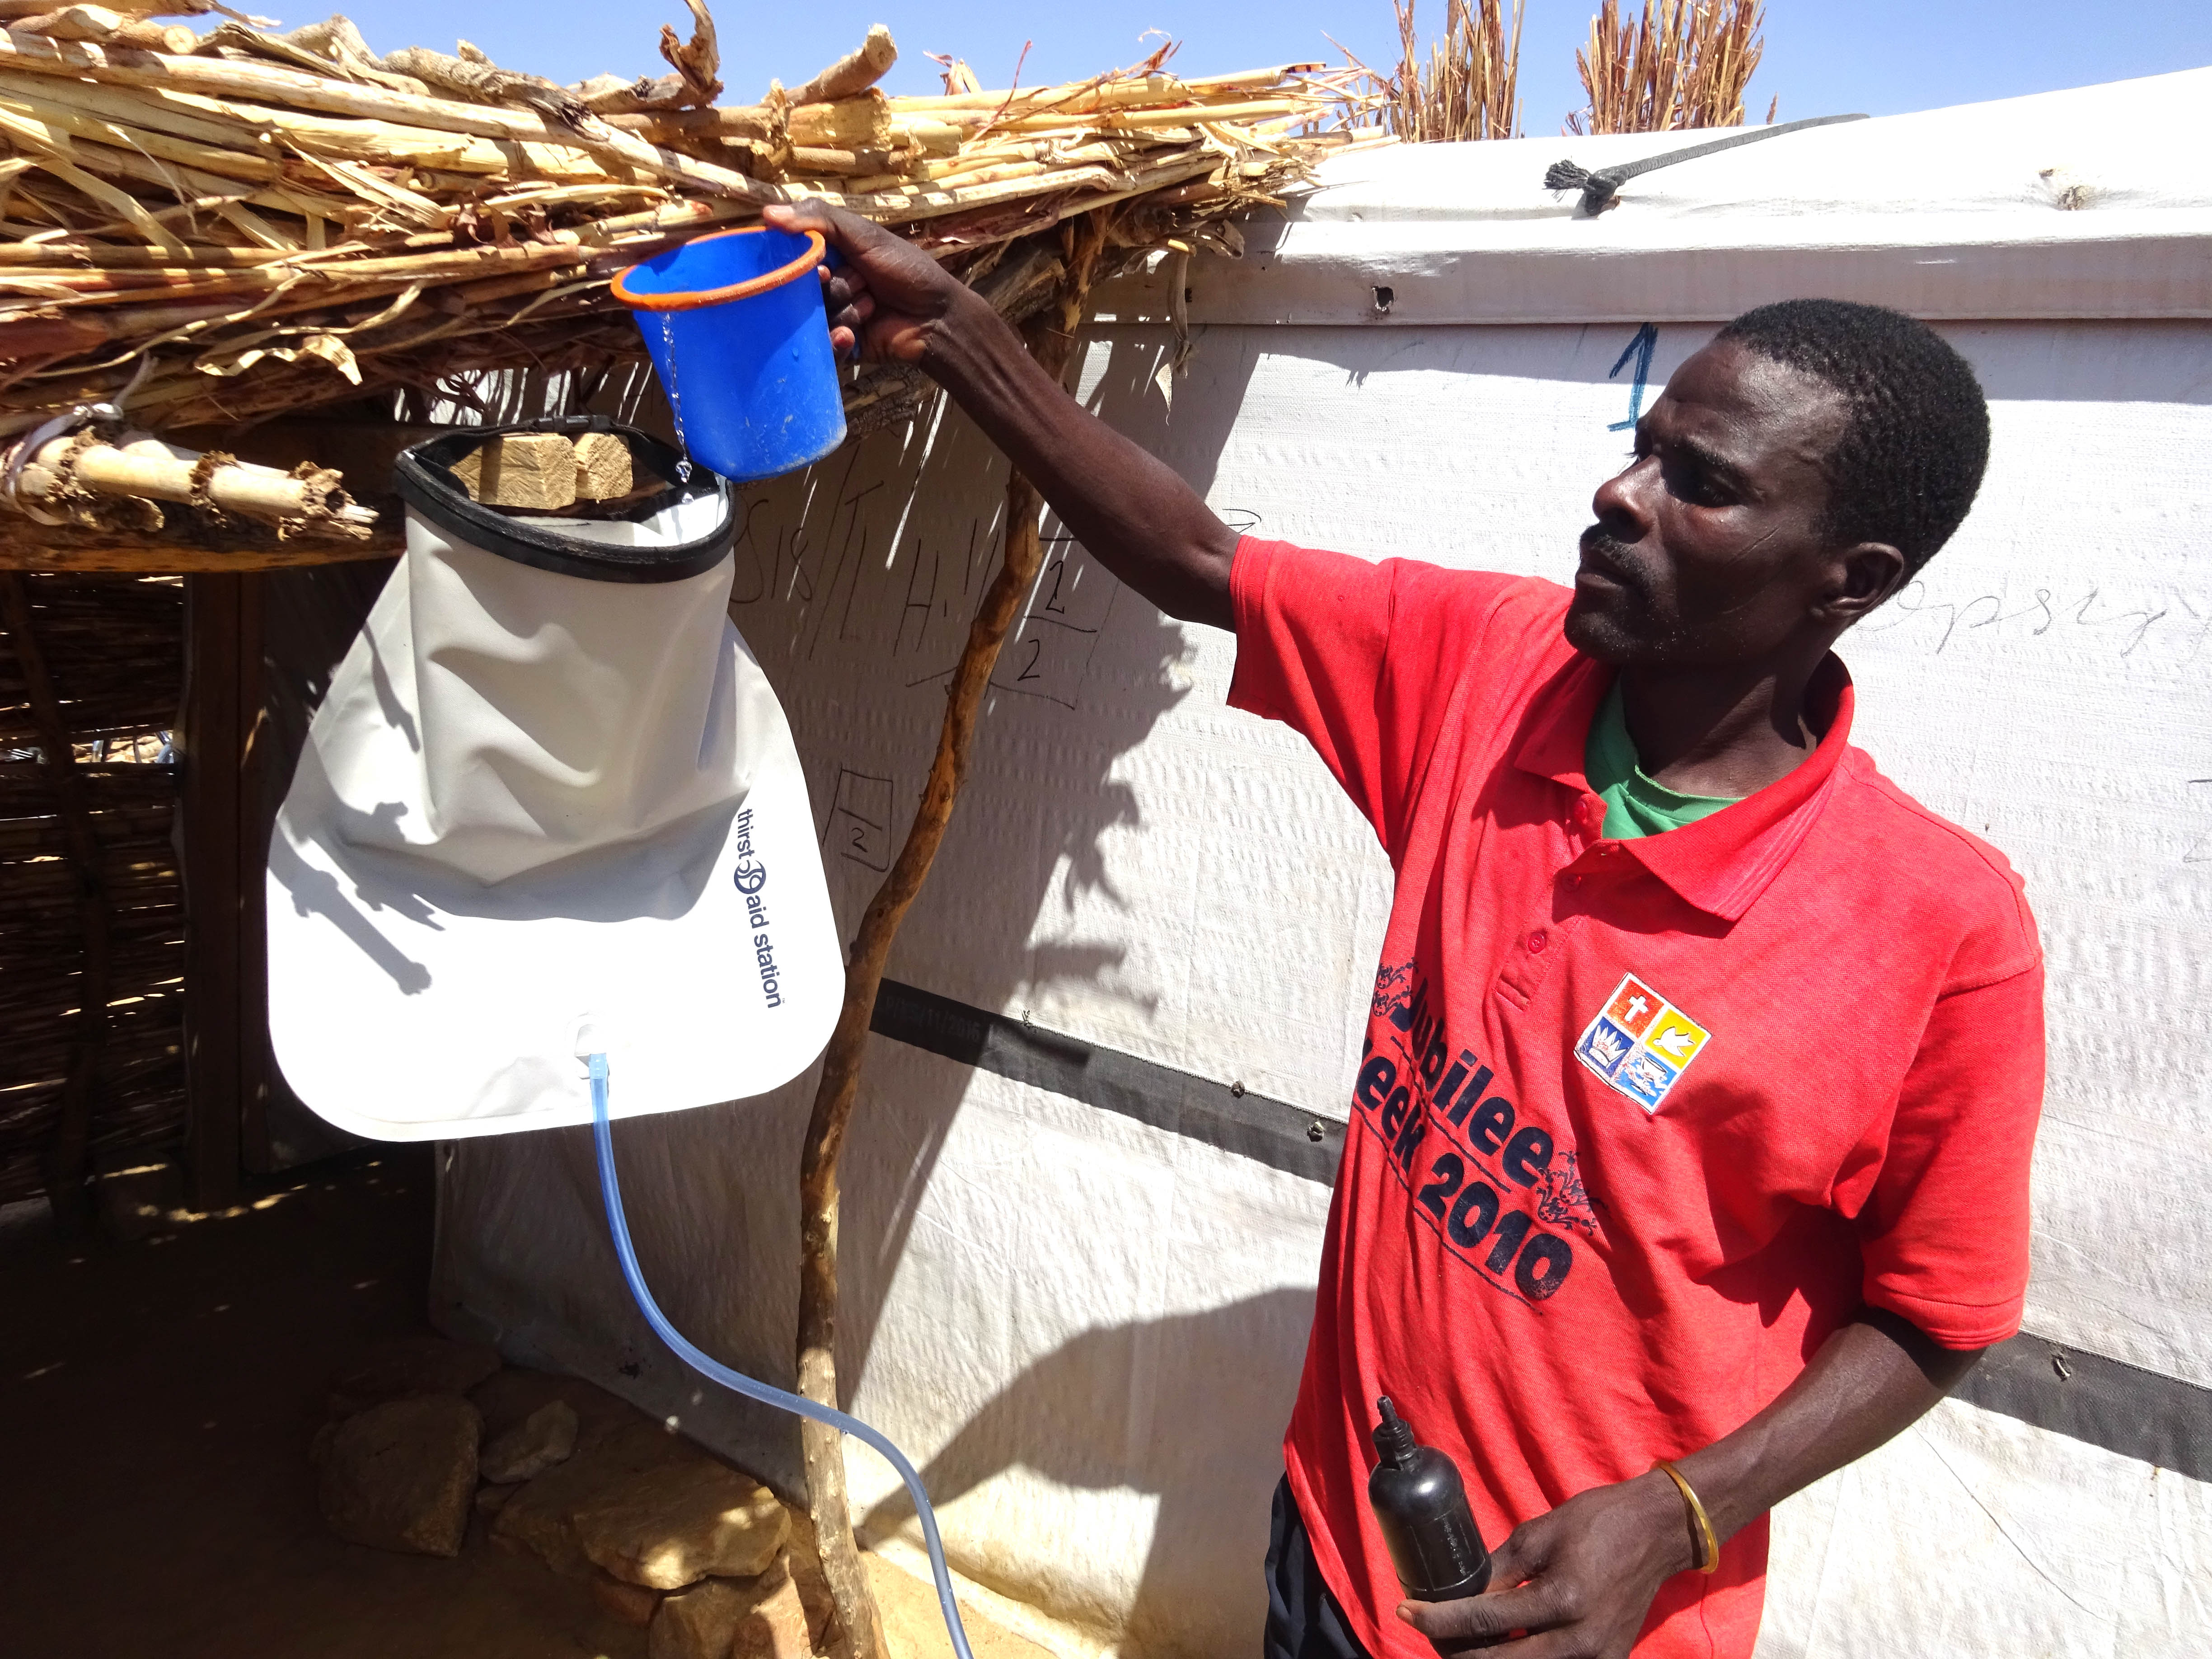 ShelterBox distributes water filters and purification equipment to help families access clean and safe drinking water